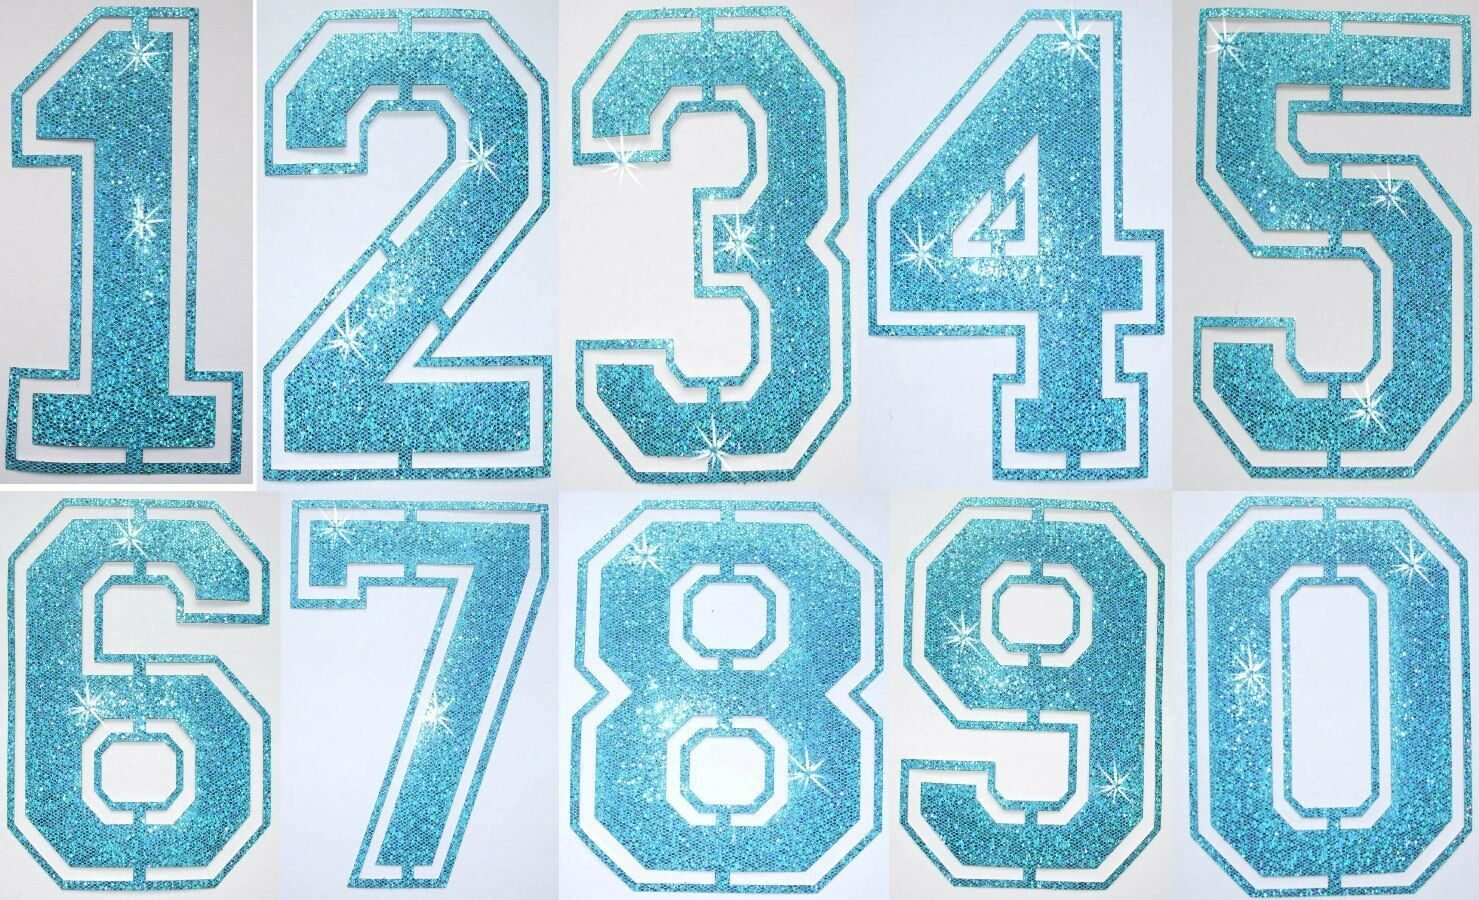 FABRIC GLITTER SEQUIN BLUE FOOTBALL NUMBER IRON-ON BLING TSHIRT TRANSFER PATCH